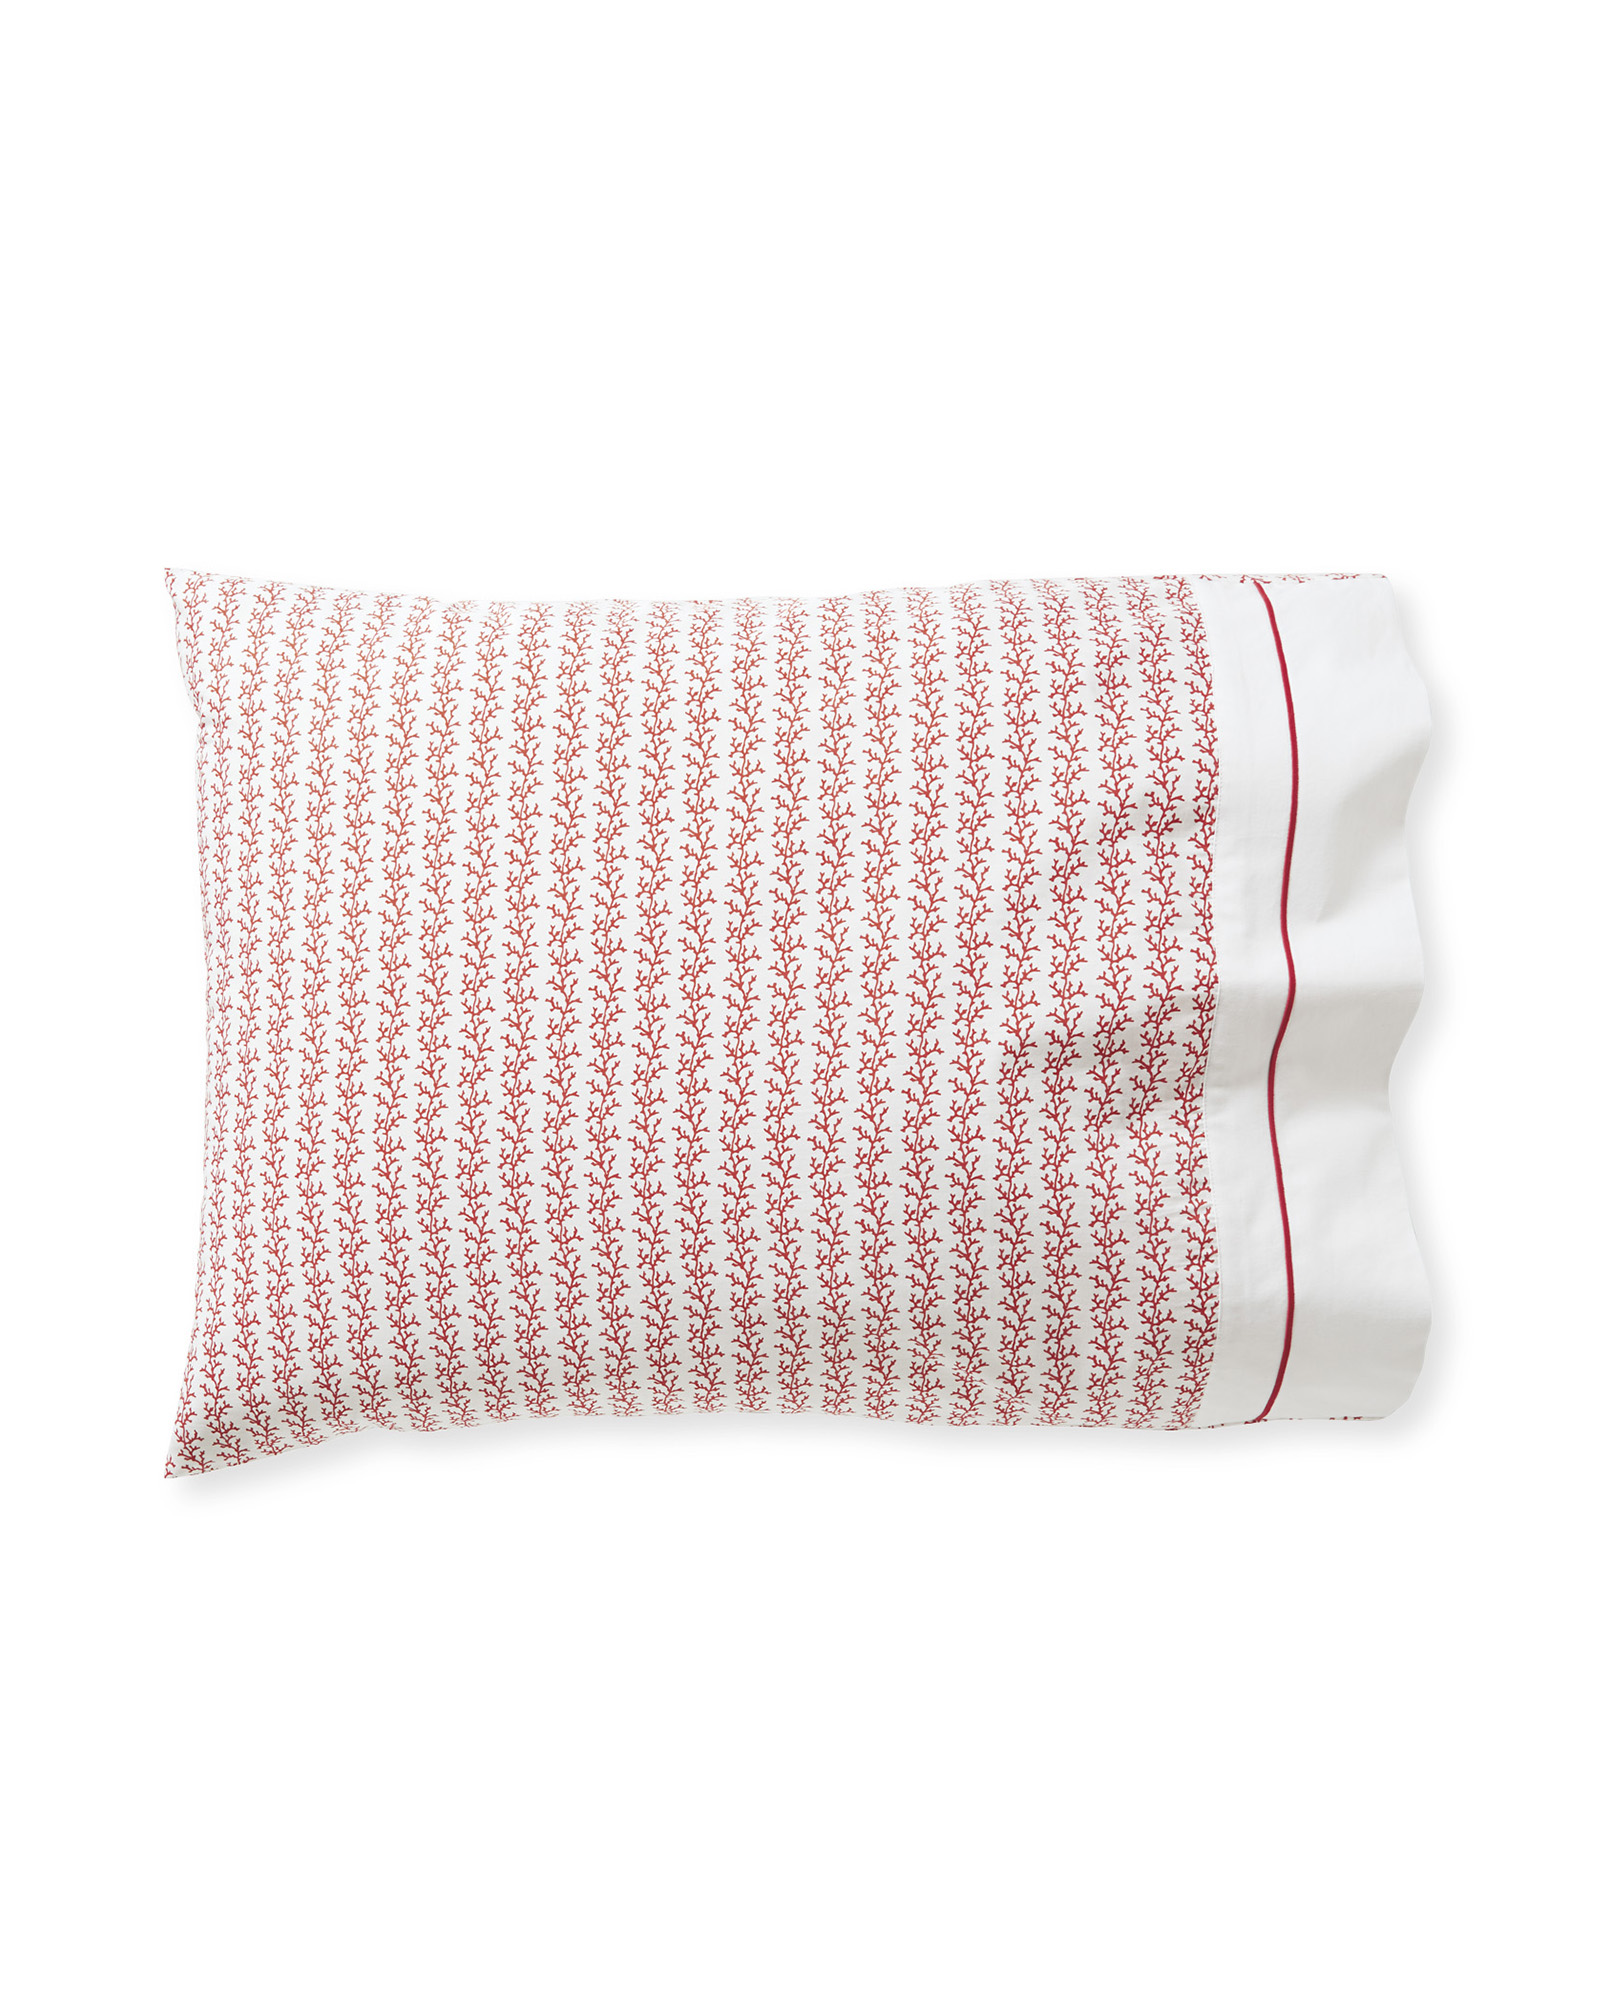 Beach Bay Pillowcases (Set of 2), Papaya